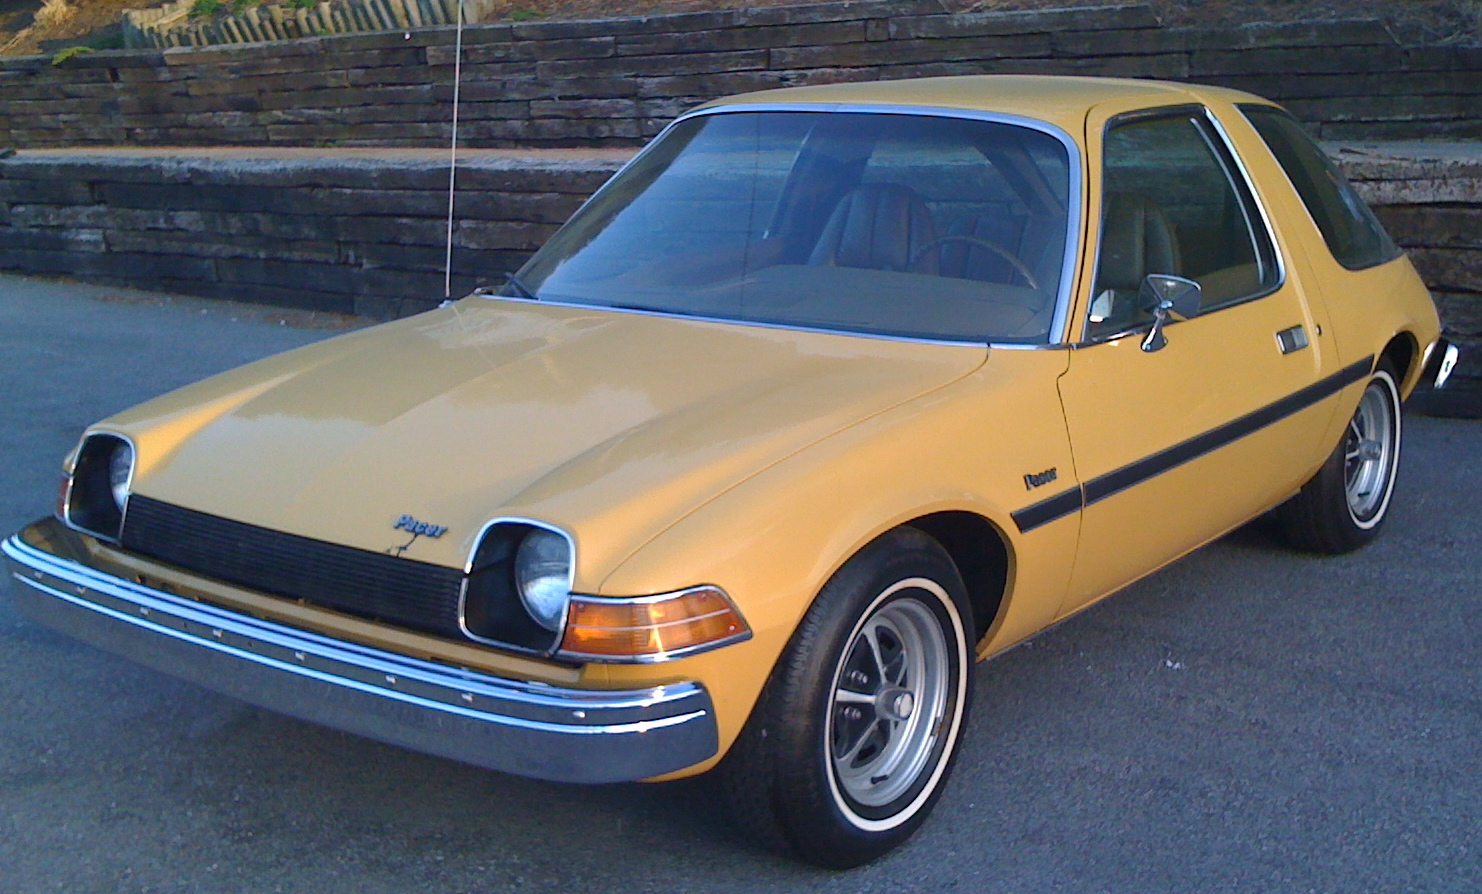 Amc Pacer Wikipedia 68 Amx Wiring Diagram